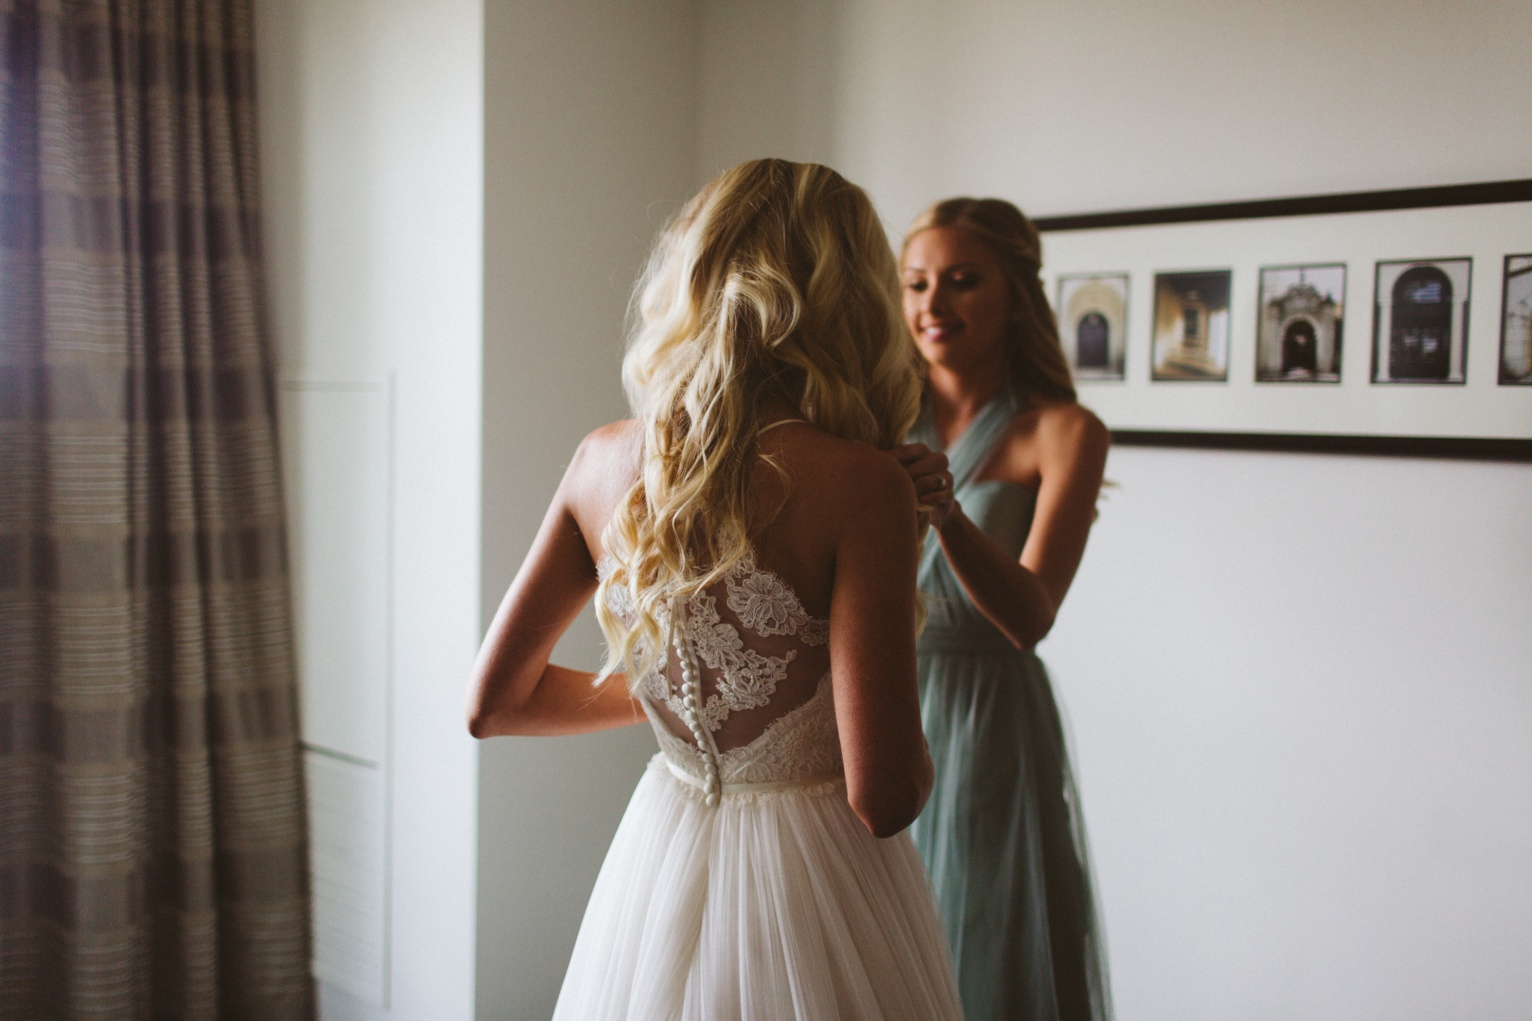 Dreamtownco.com_blog_Jordan&Lindsey_Wedding__0061.jpg